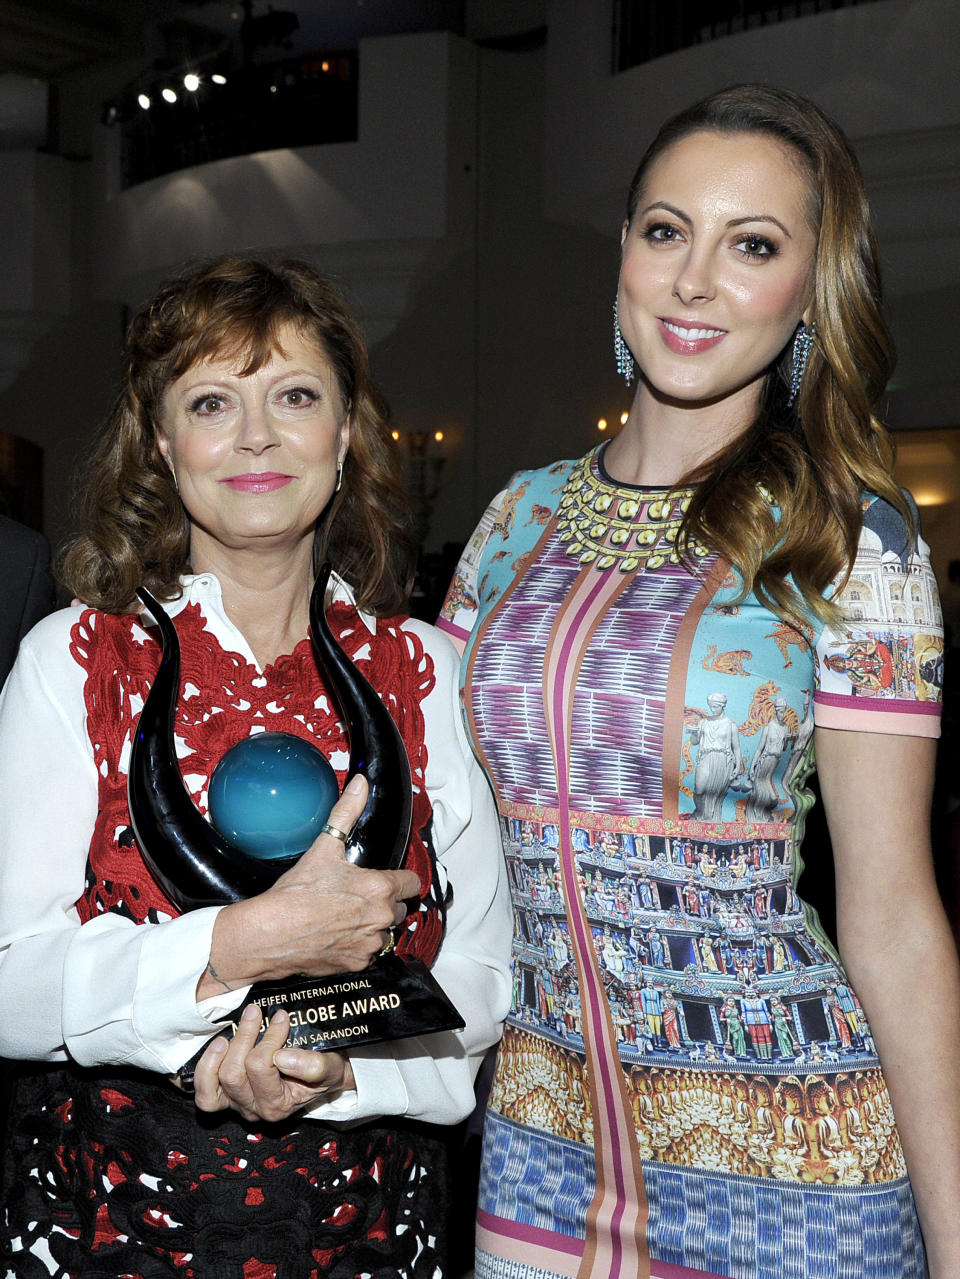 Eva Amurri Martino (pictured with mom Susan Sarandon in 2013) got some backlash over her daughter's Mexico-inspired birthday party. (Photo: John Sciulli/Getty Images for Heifer International)